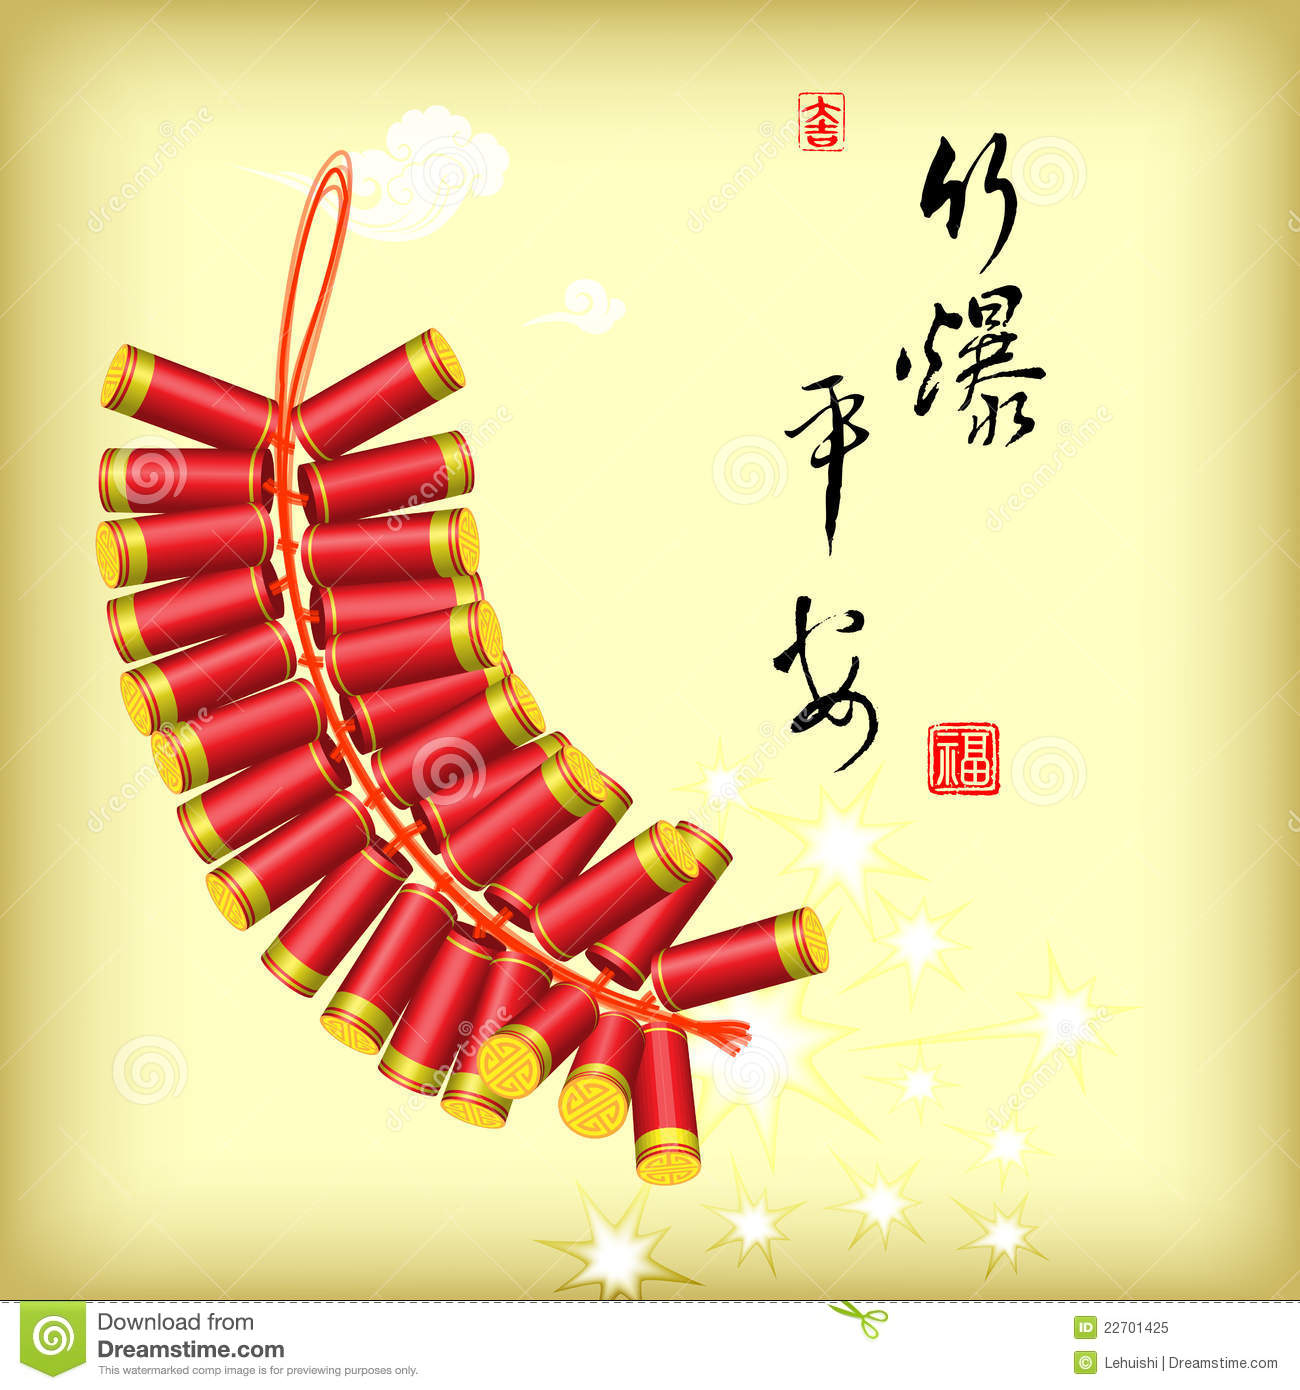 Chinese New Year Greeting Banner Stock Image.